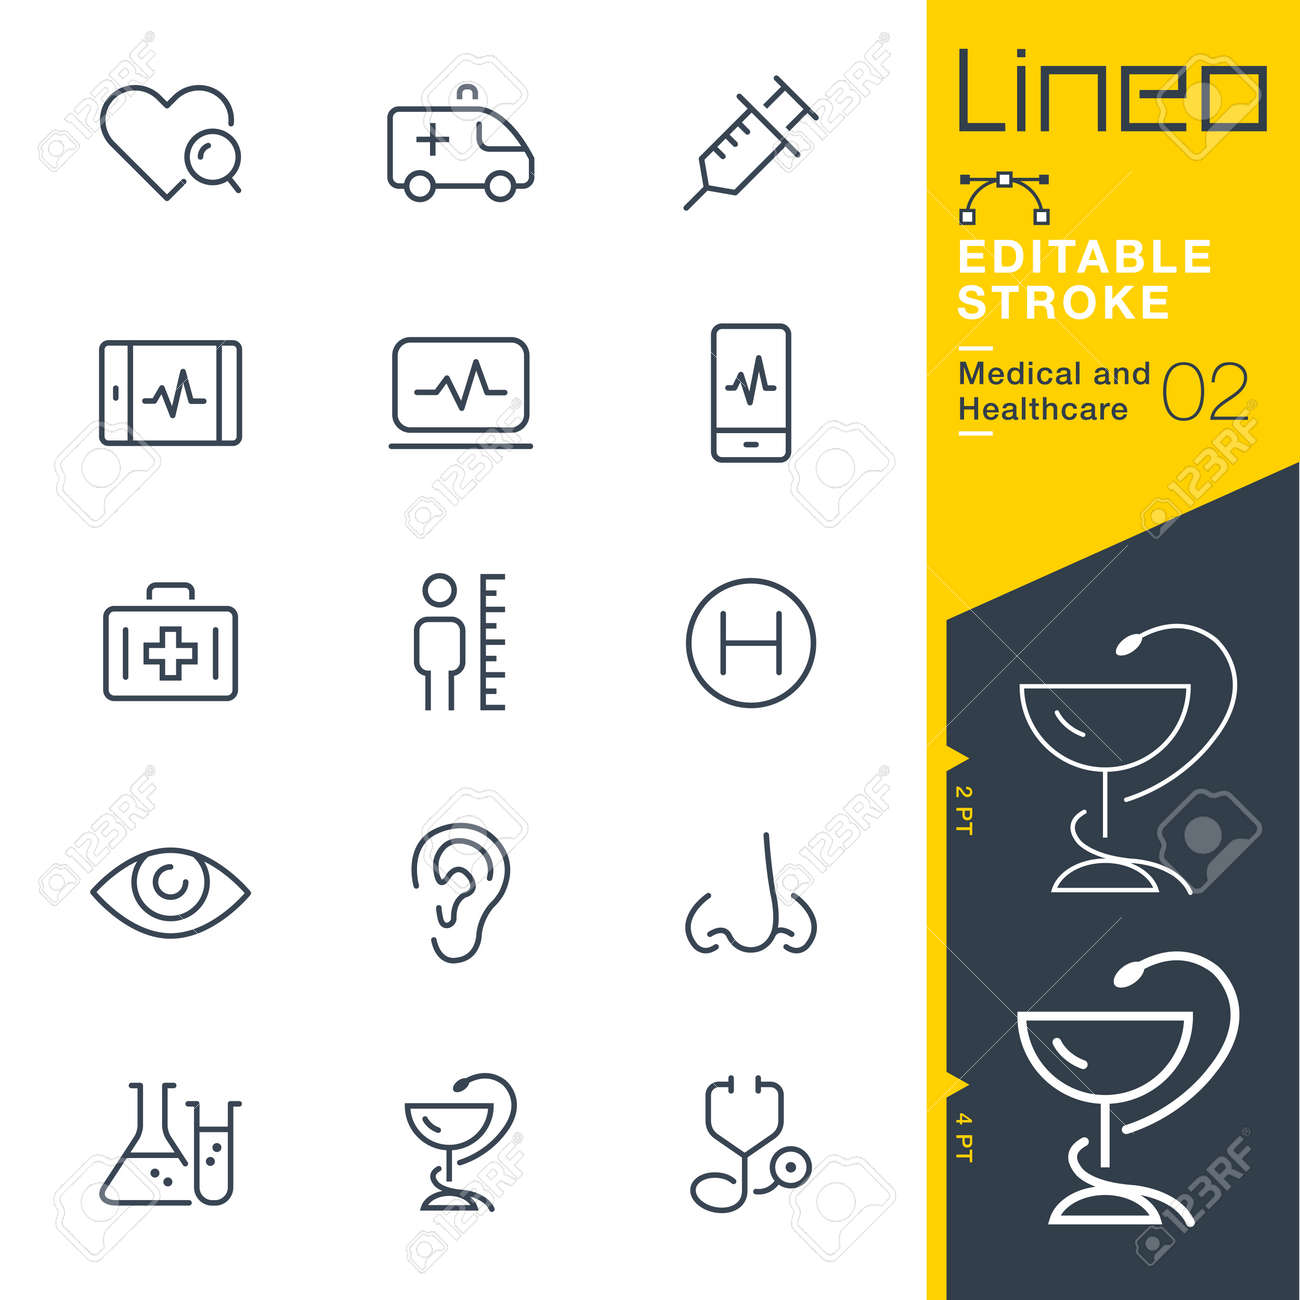 Lineo Editable Stroke - Medical and Healthcare line icon Vector Icons - Adjust stroke weight - Change to any color - 85190489